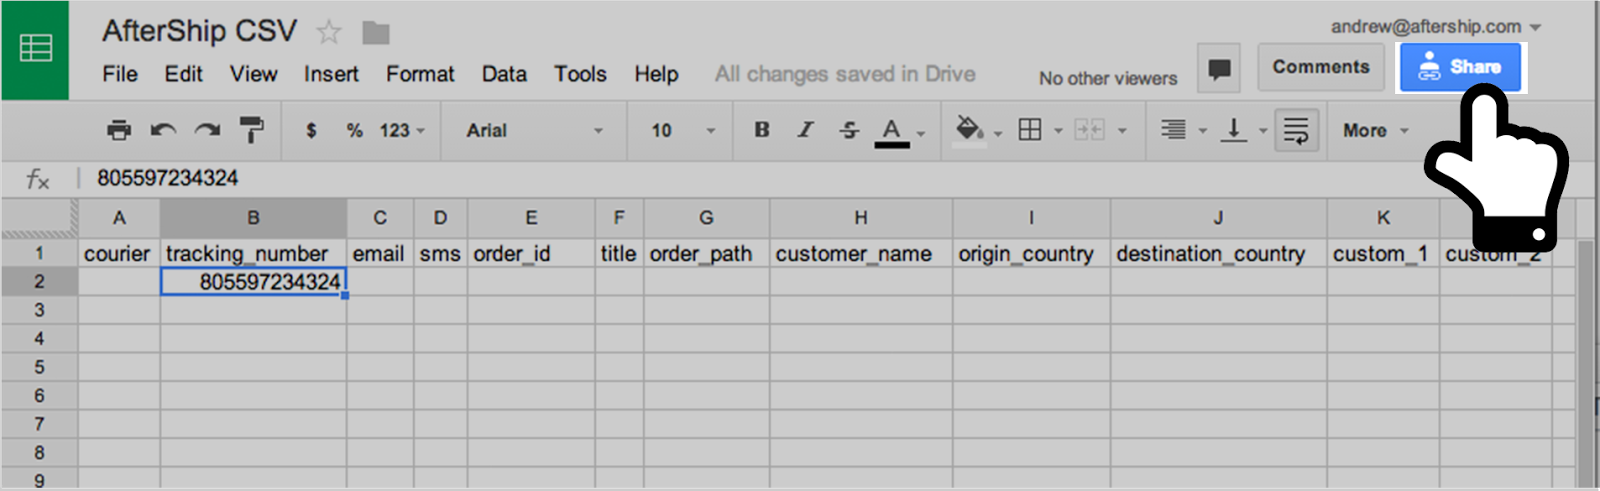 How do I create a MisoData from a Google Drive spreadsheet